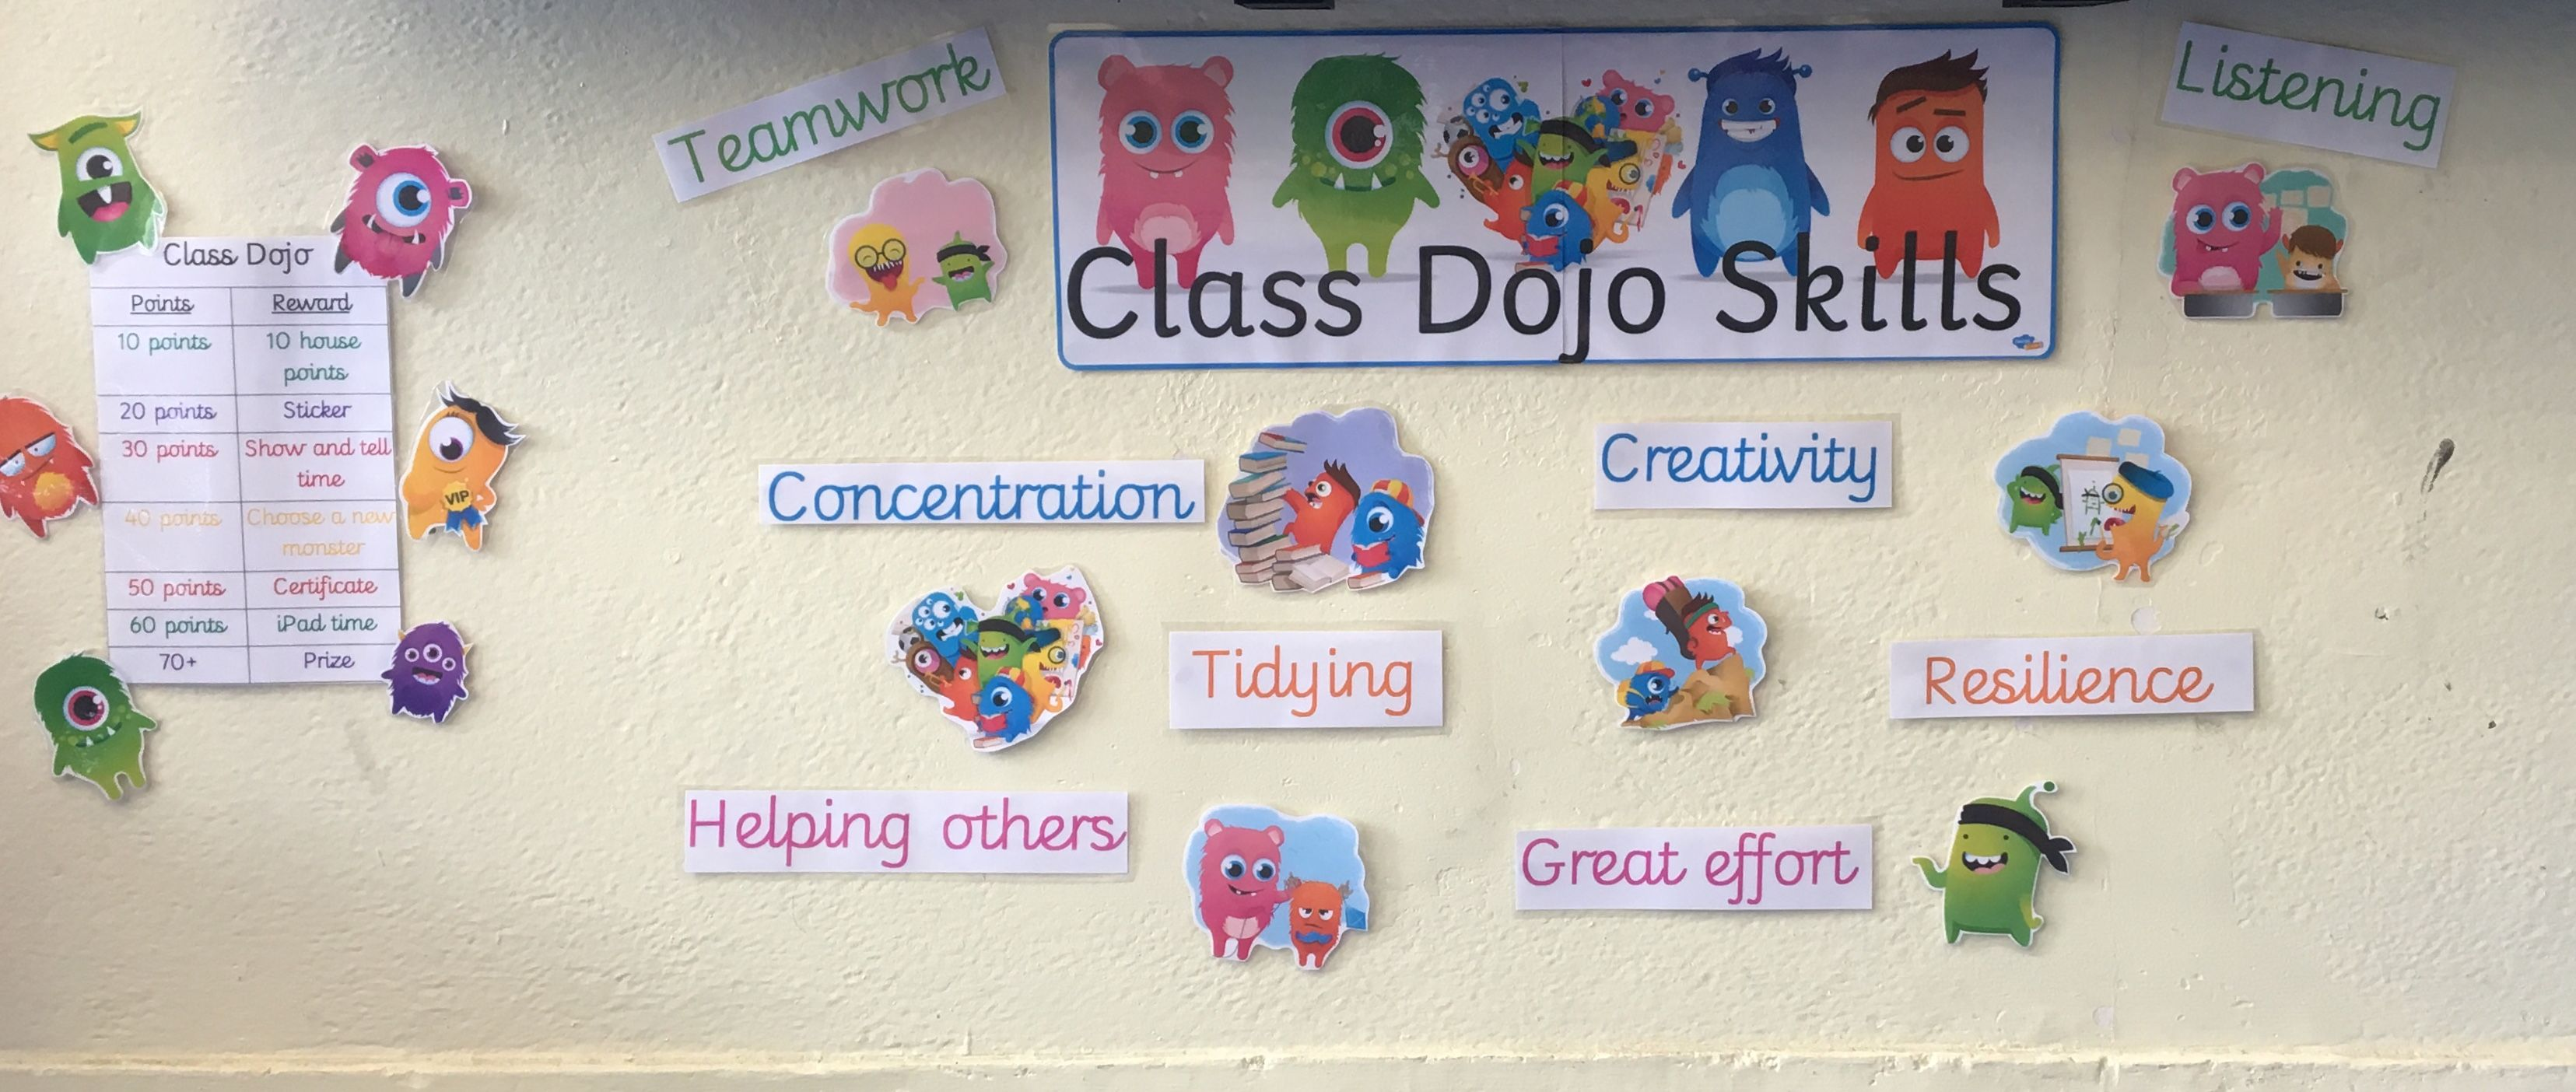 Used The Twinkl Create Feature To Make This Class Dojo